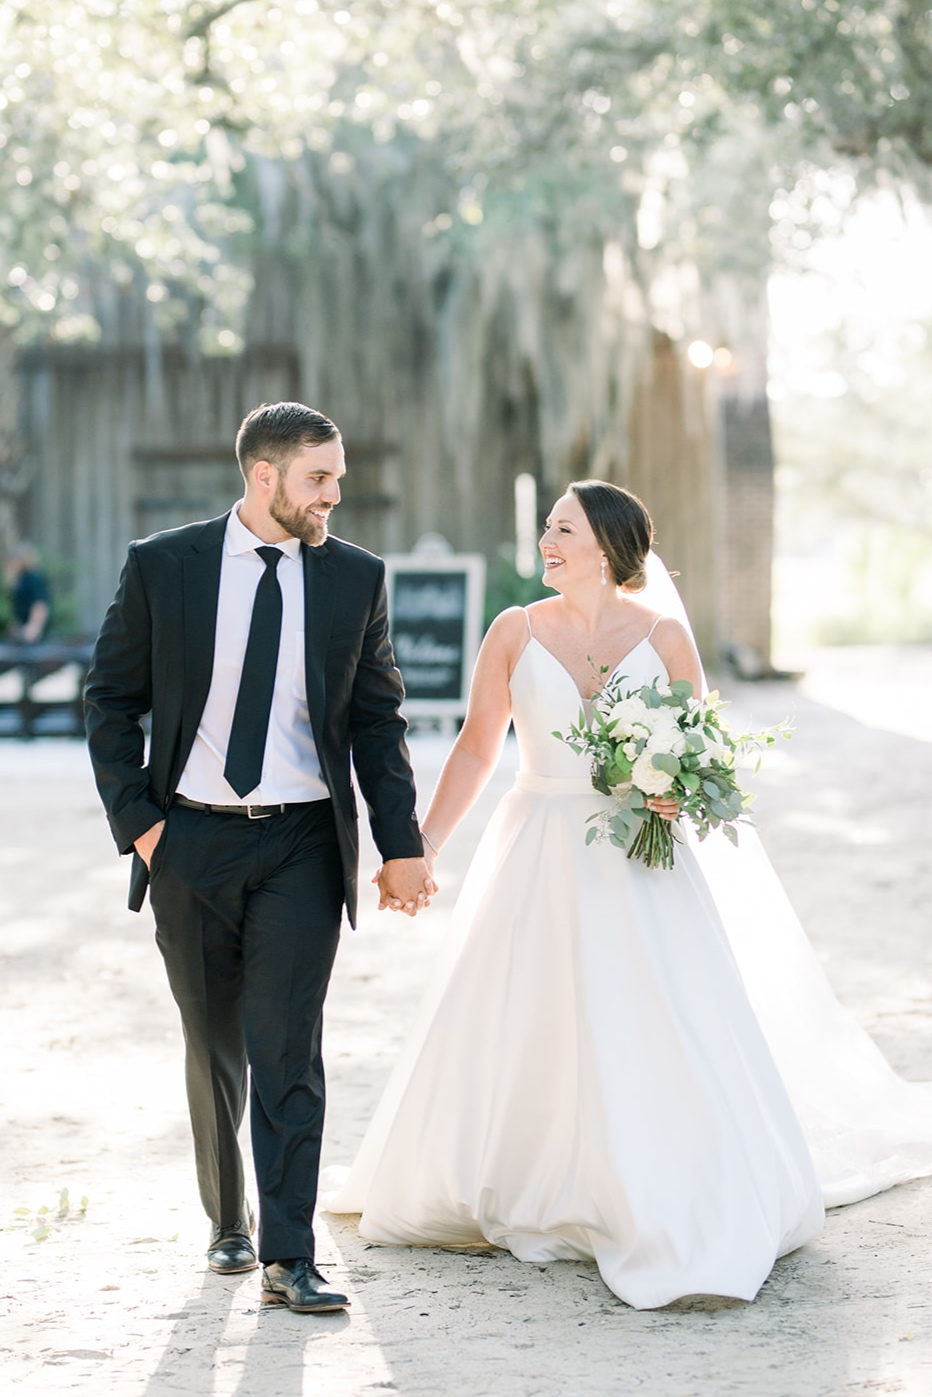 Brittany & Kyle at Boone Hall Plantation on July 20th, 2019. Photo by Audrey Rose Photography